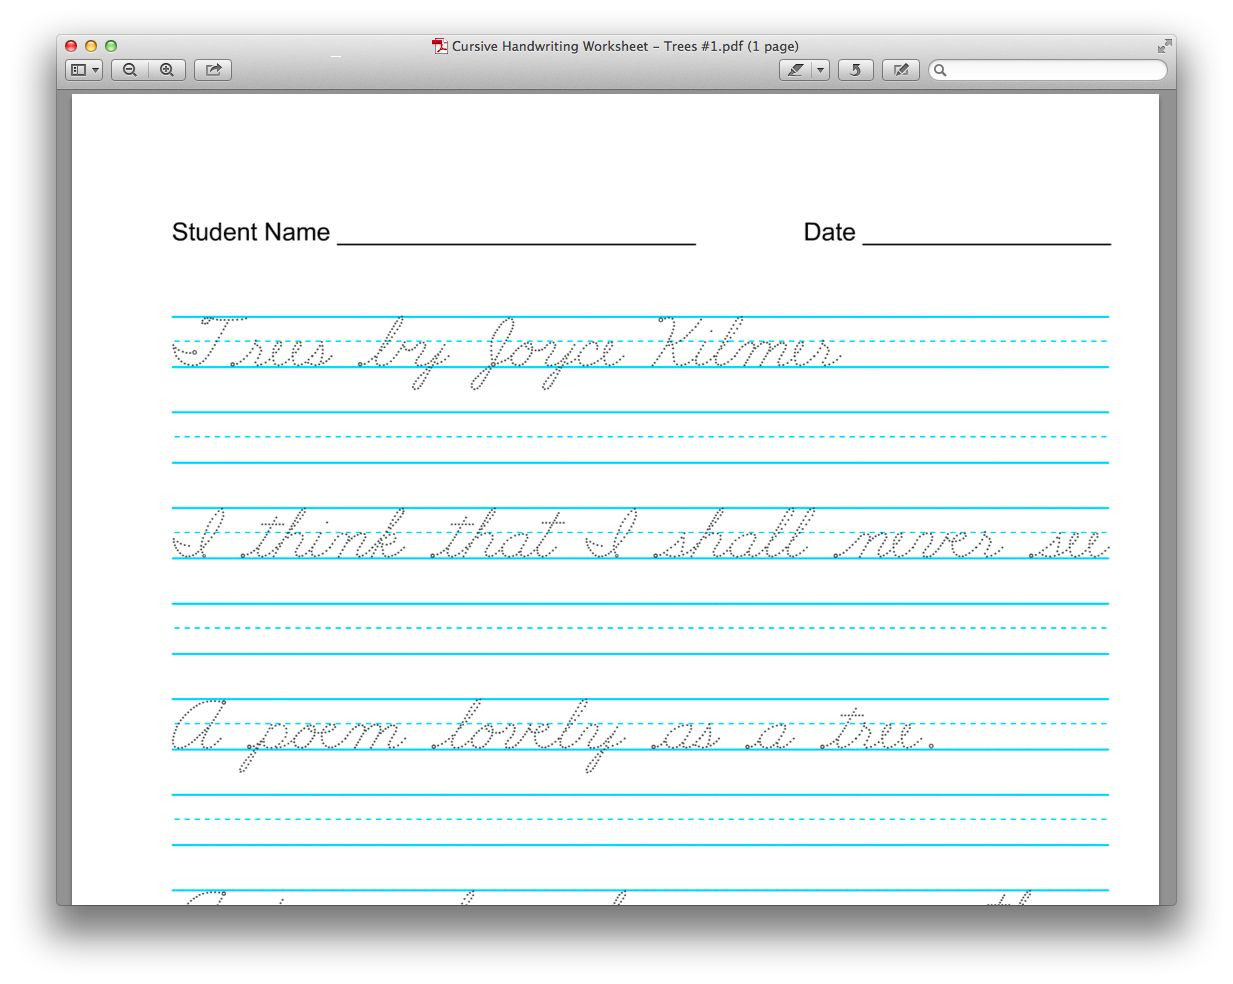 Handwriting Worksheets for Older Students Useful and Free Resource Customize Your Copywork